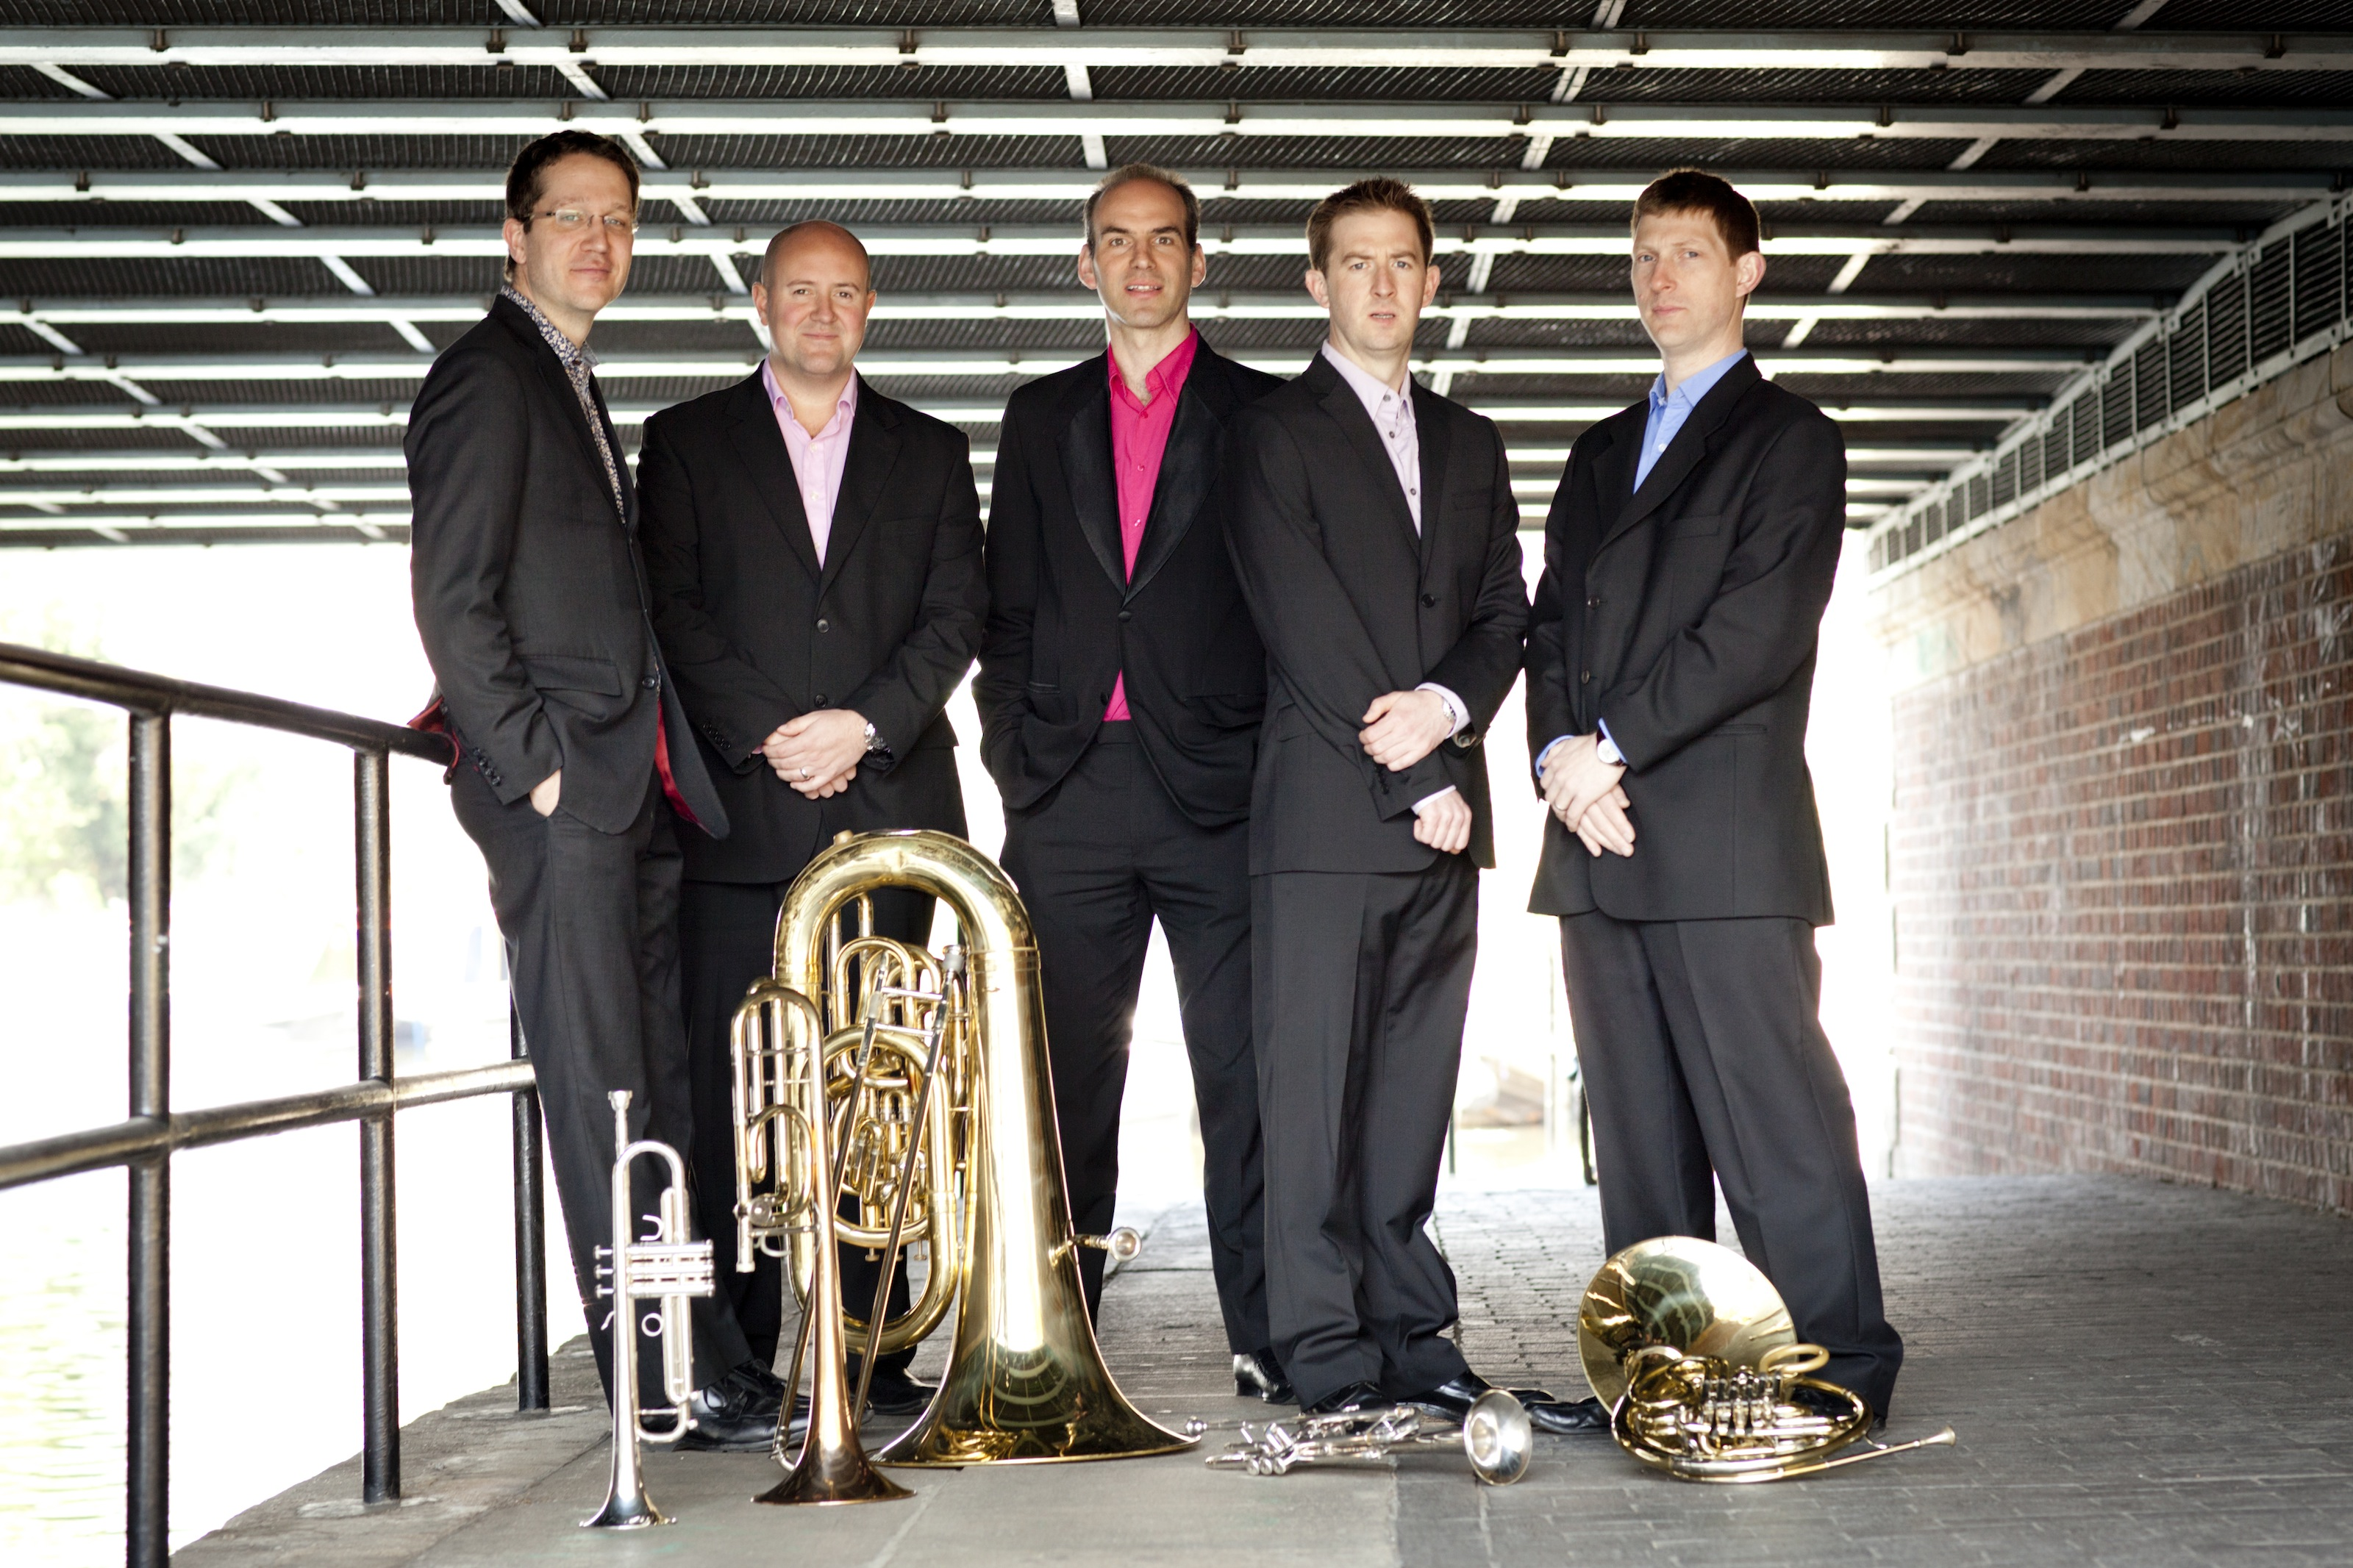 The Onyx Brass